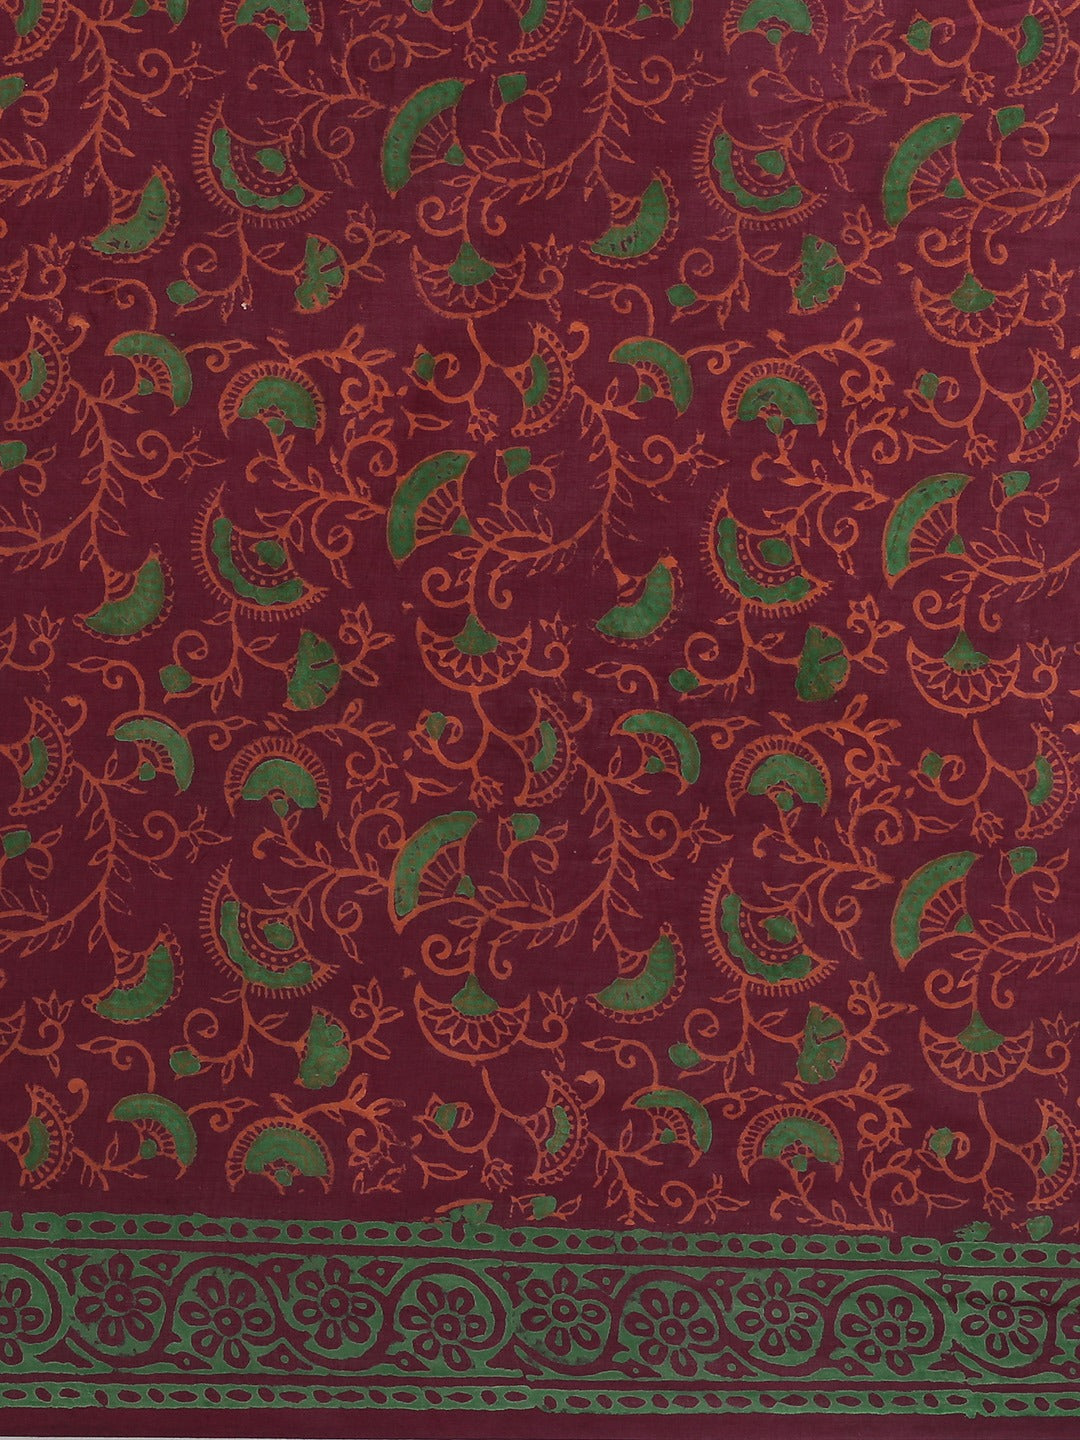 Burgundy & Orange Handblock Print Bagru Saree-Saree-Kalakari India-BHKPSA0105-Cotton, Geographical Indication, Hand Blocks, Hand Crafted, Heritage Prints, Sanganeri, Sarees, Sustainable Fabrics-[Linen,Ethnic,wear,Fashionista,Handloom,Handicraft,Indigo,blockprint,block,print,Cotton,Chanderi,Blue, latest,classy,party,bollywood,trendy,summer,style,traditional,formal,elegant,unique,style,hand,block,print, dabu,booti,gift,present,glamorous,affordable,collectible,Sari,Saree,printed, holi, Diwali, birt